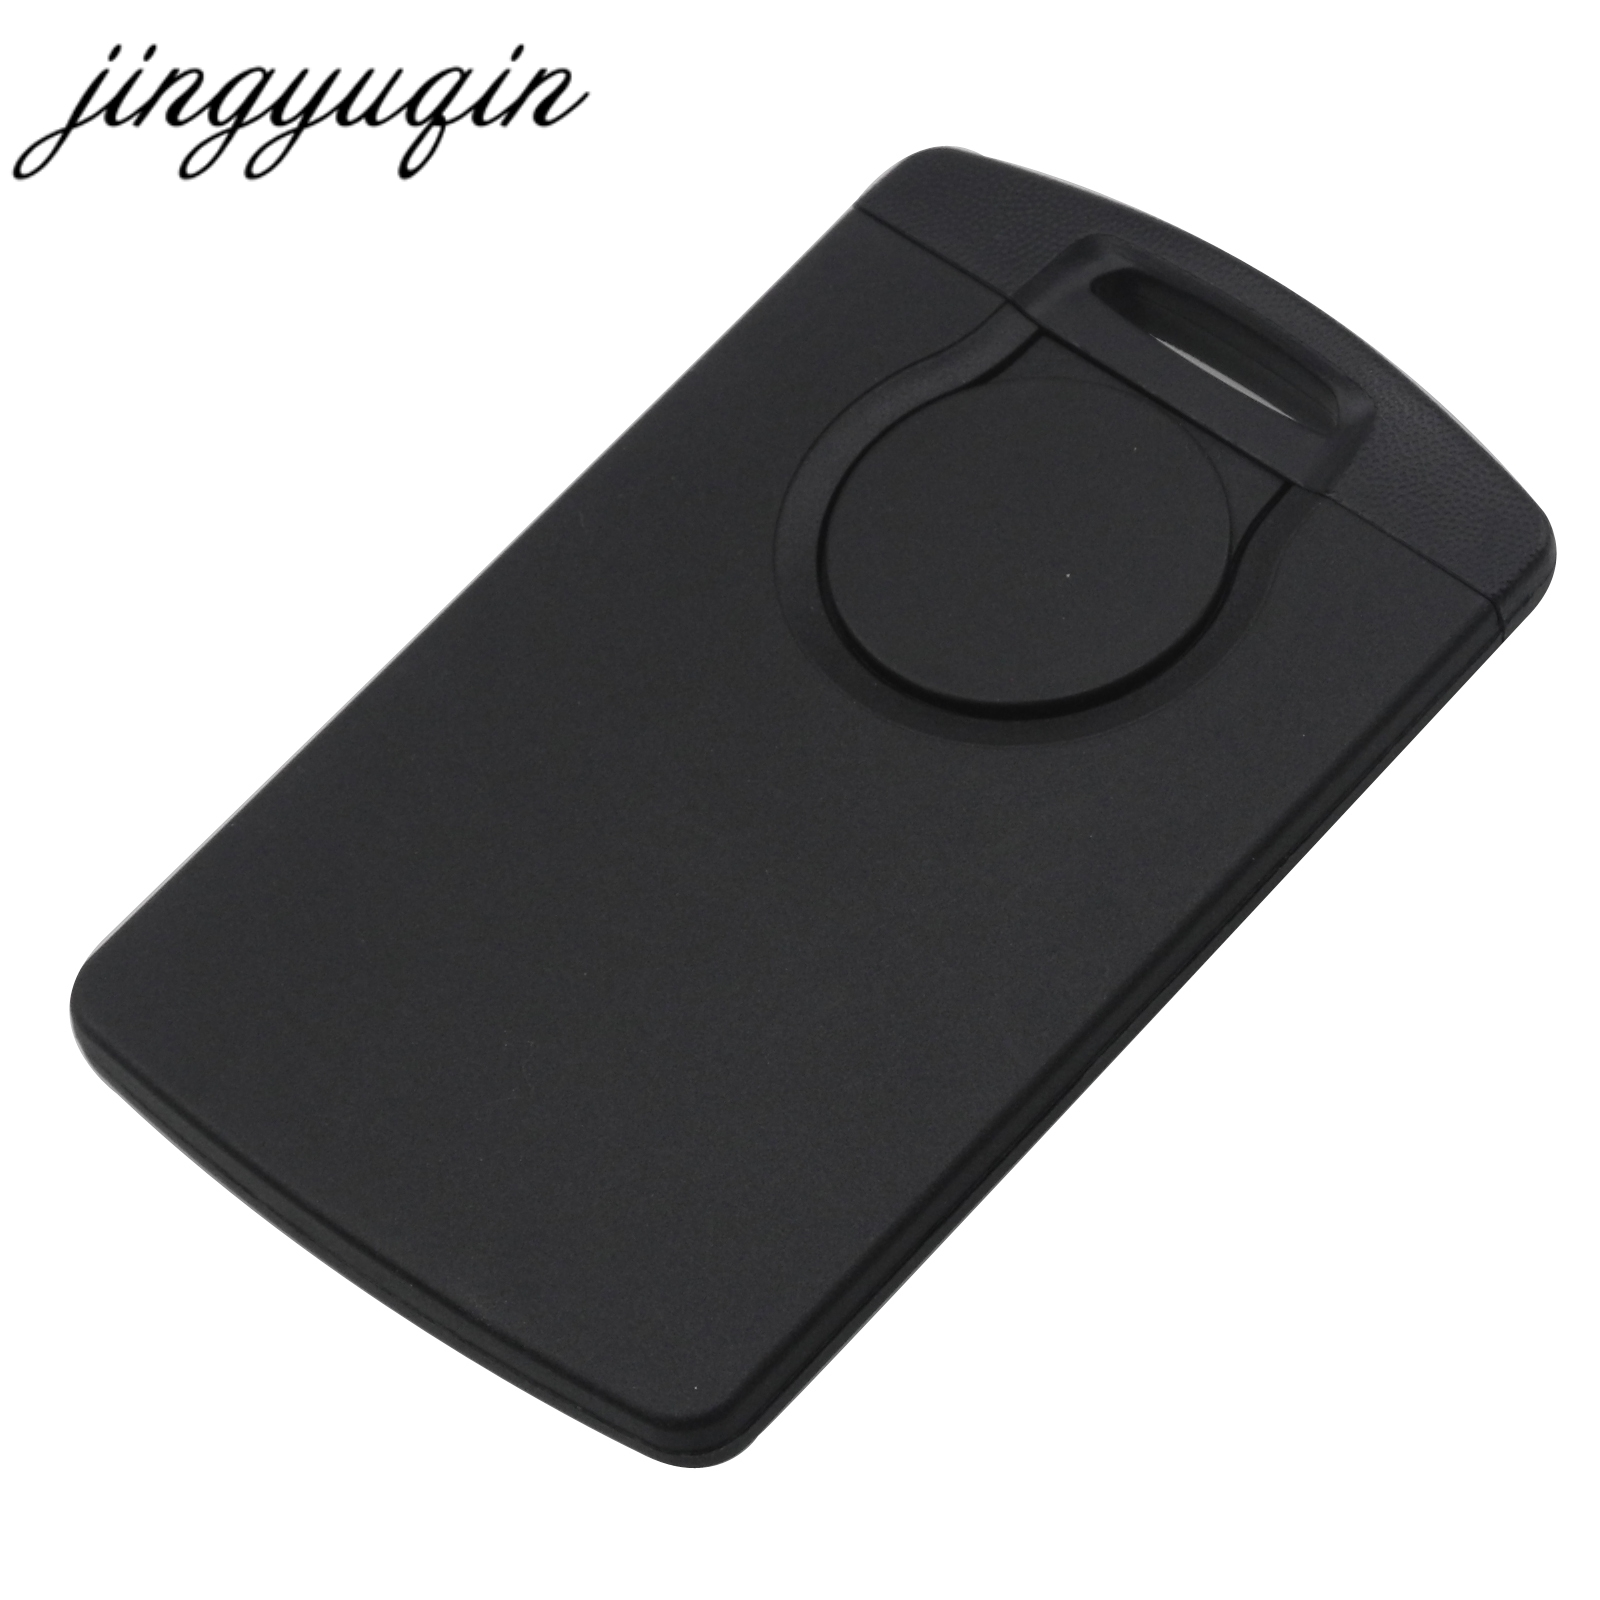 Image 3 - jingyuqin Car Key Card Fob 433MHZ PCF7952 Chip for Renault Megane Scenic Laguna Koleos Clio Uncut Blade 4 Button Remote Key-in Car Key from Automobiles & Motorcycles